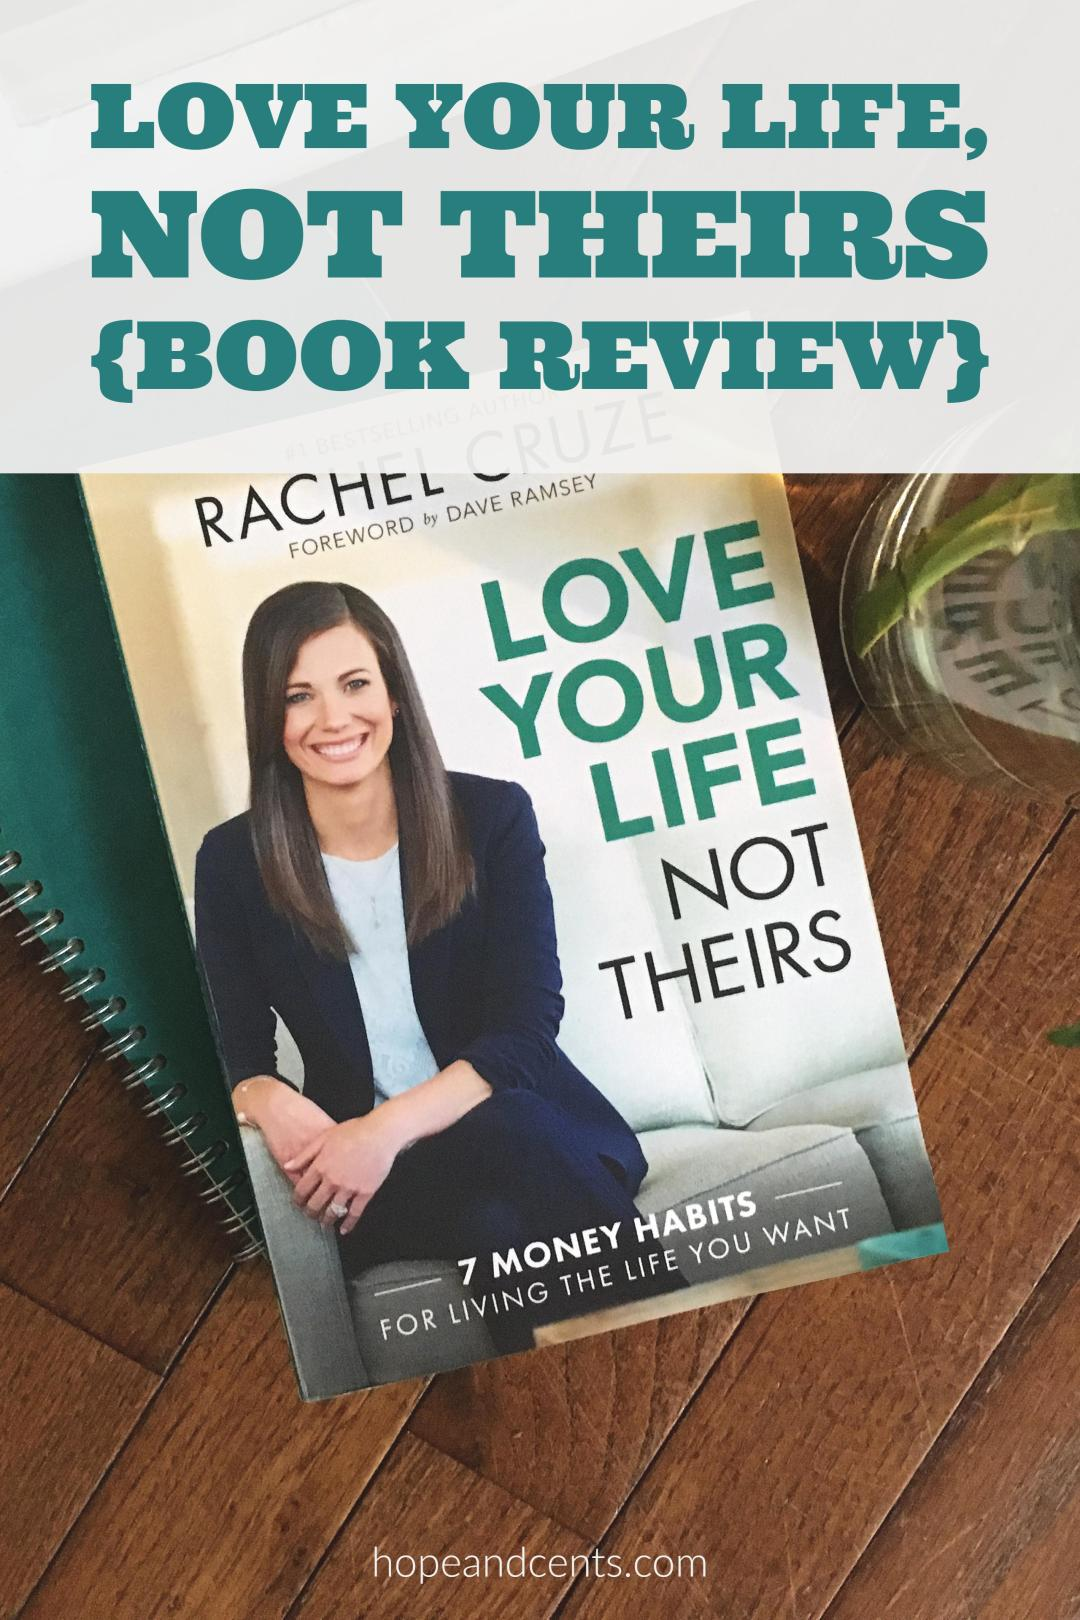 LOVED reading this new book from Rachel Cruze, daughter of Dave Ramsey. Living the life YOU value can still mean you live a frugal and debt-free life. Love Your Life, Not Theirs, Book Review.